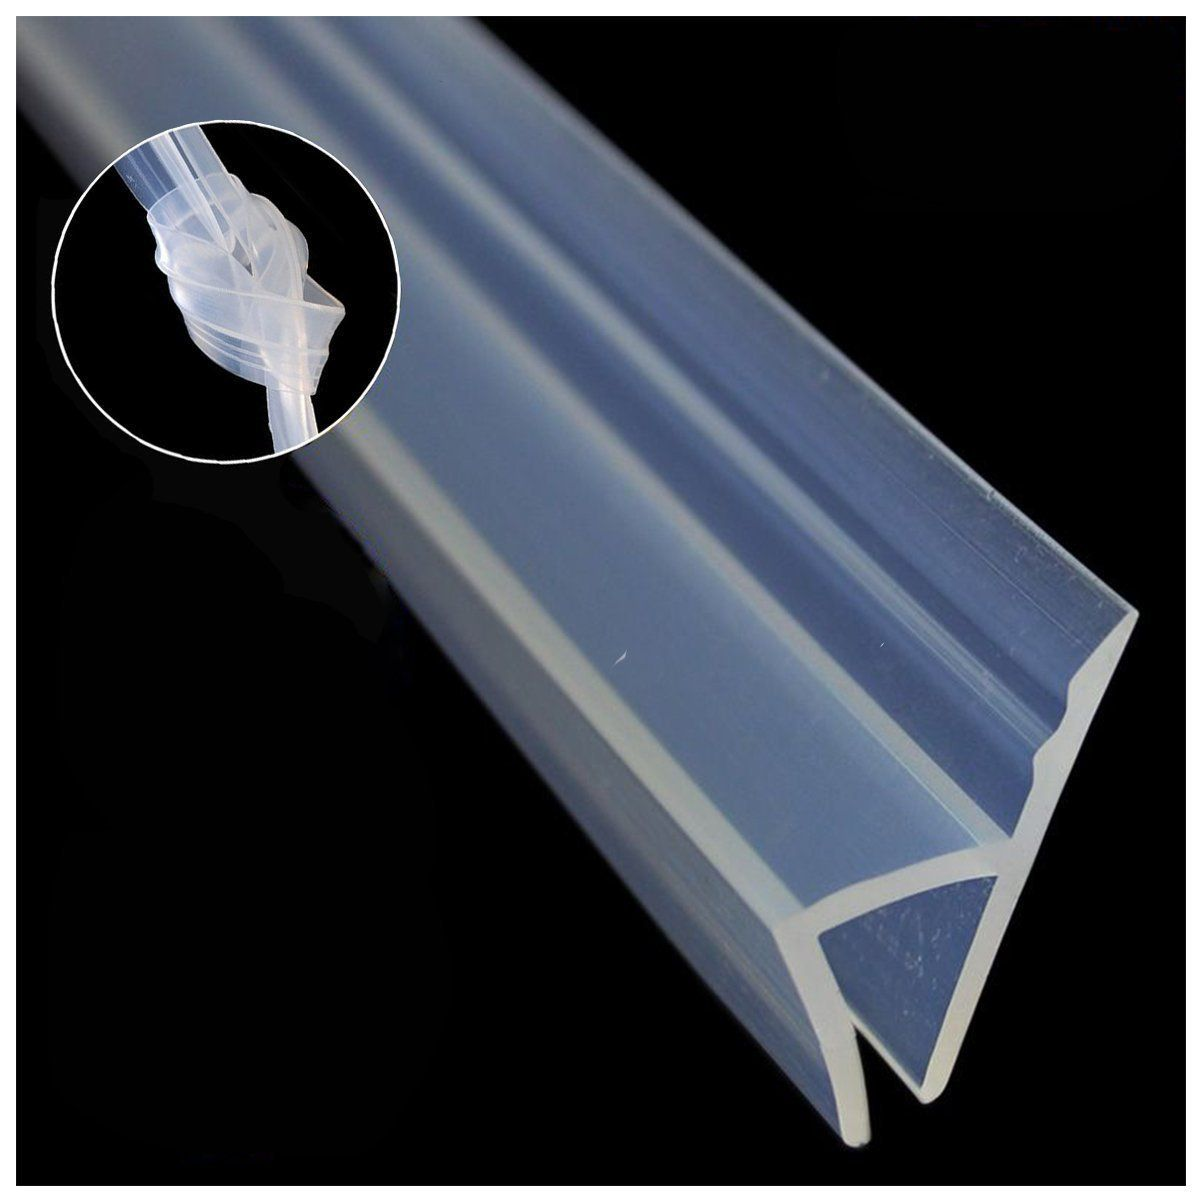 Showeet Customer Review Glass Shower Door Seal Strip No Adhesive Package Dimensions 9 5 X 6 5 X 2 2 Inches Glass Shower Door Seals Shower Door Seal Glass Shower Doors